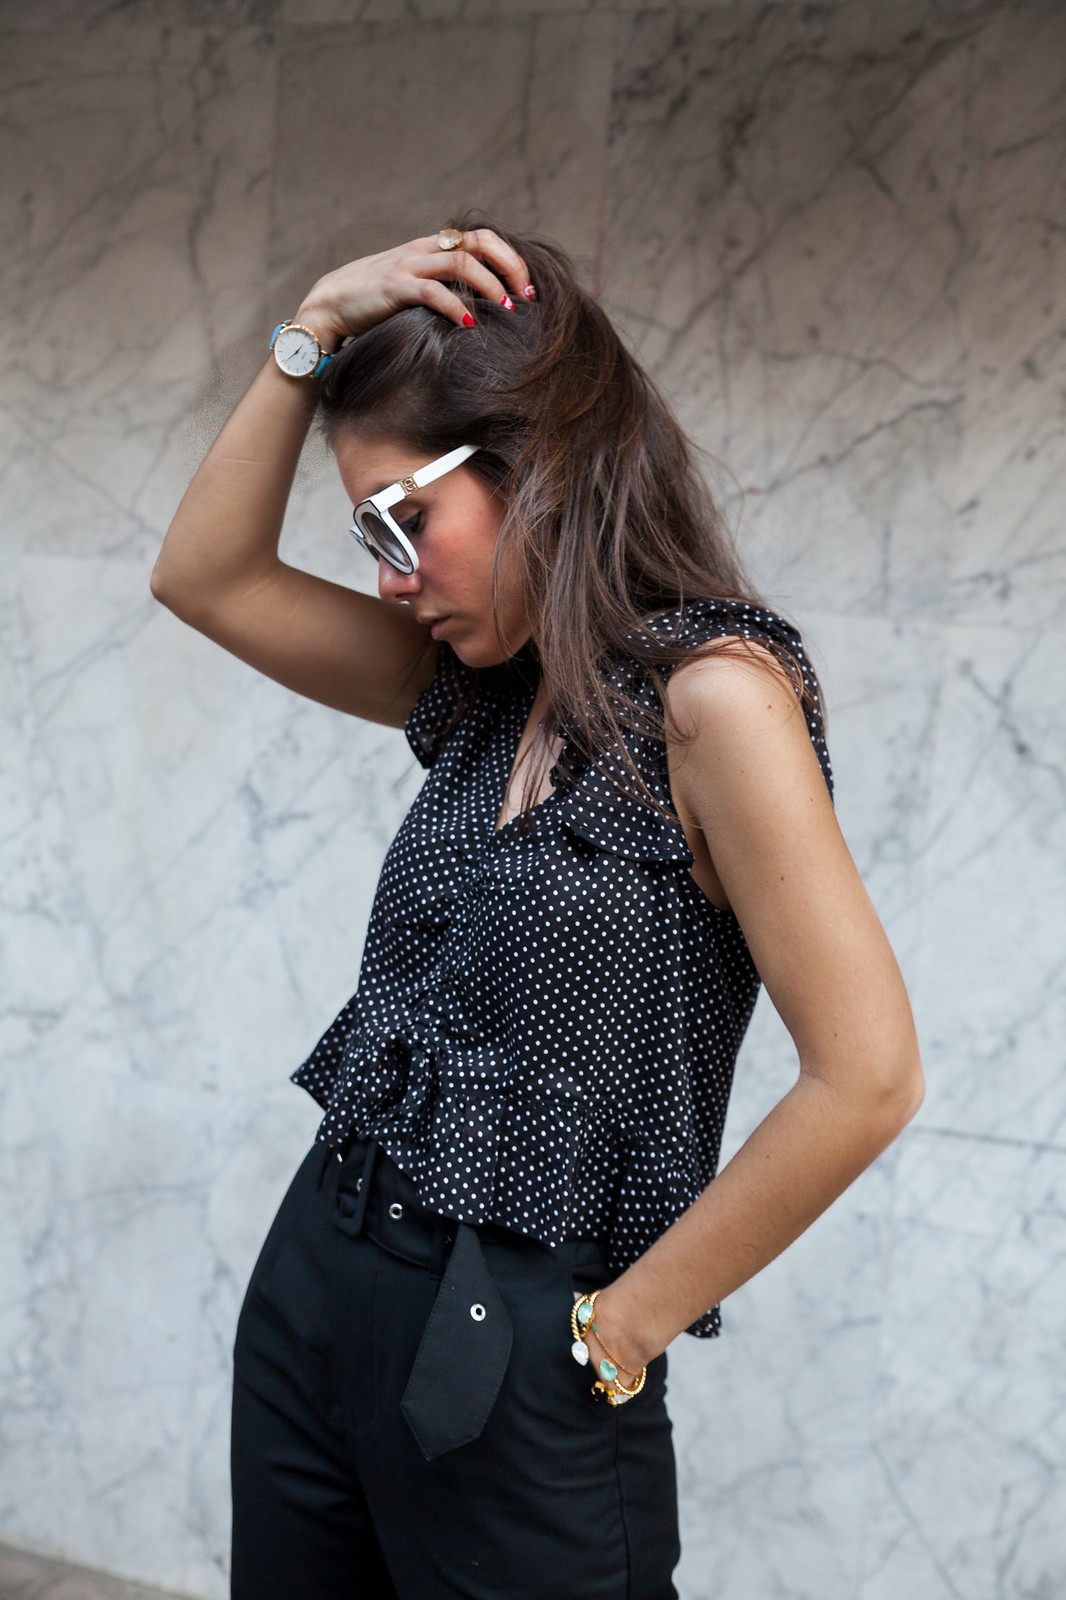 011_NA-KD_DOTS_BLACK_OUTFIT_THEGUESTGIRL_INFLUENCER_SPAIN